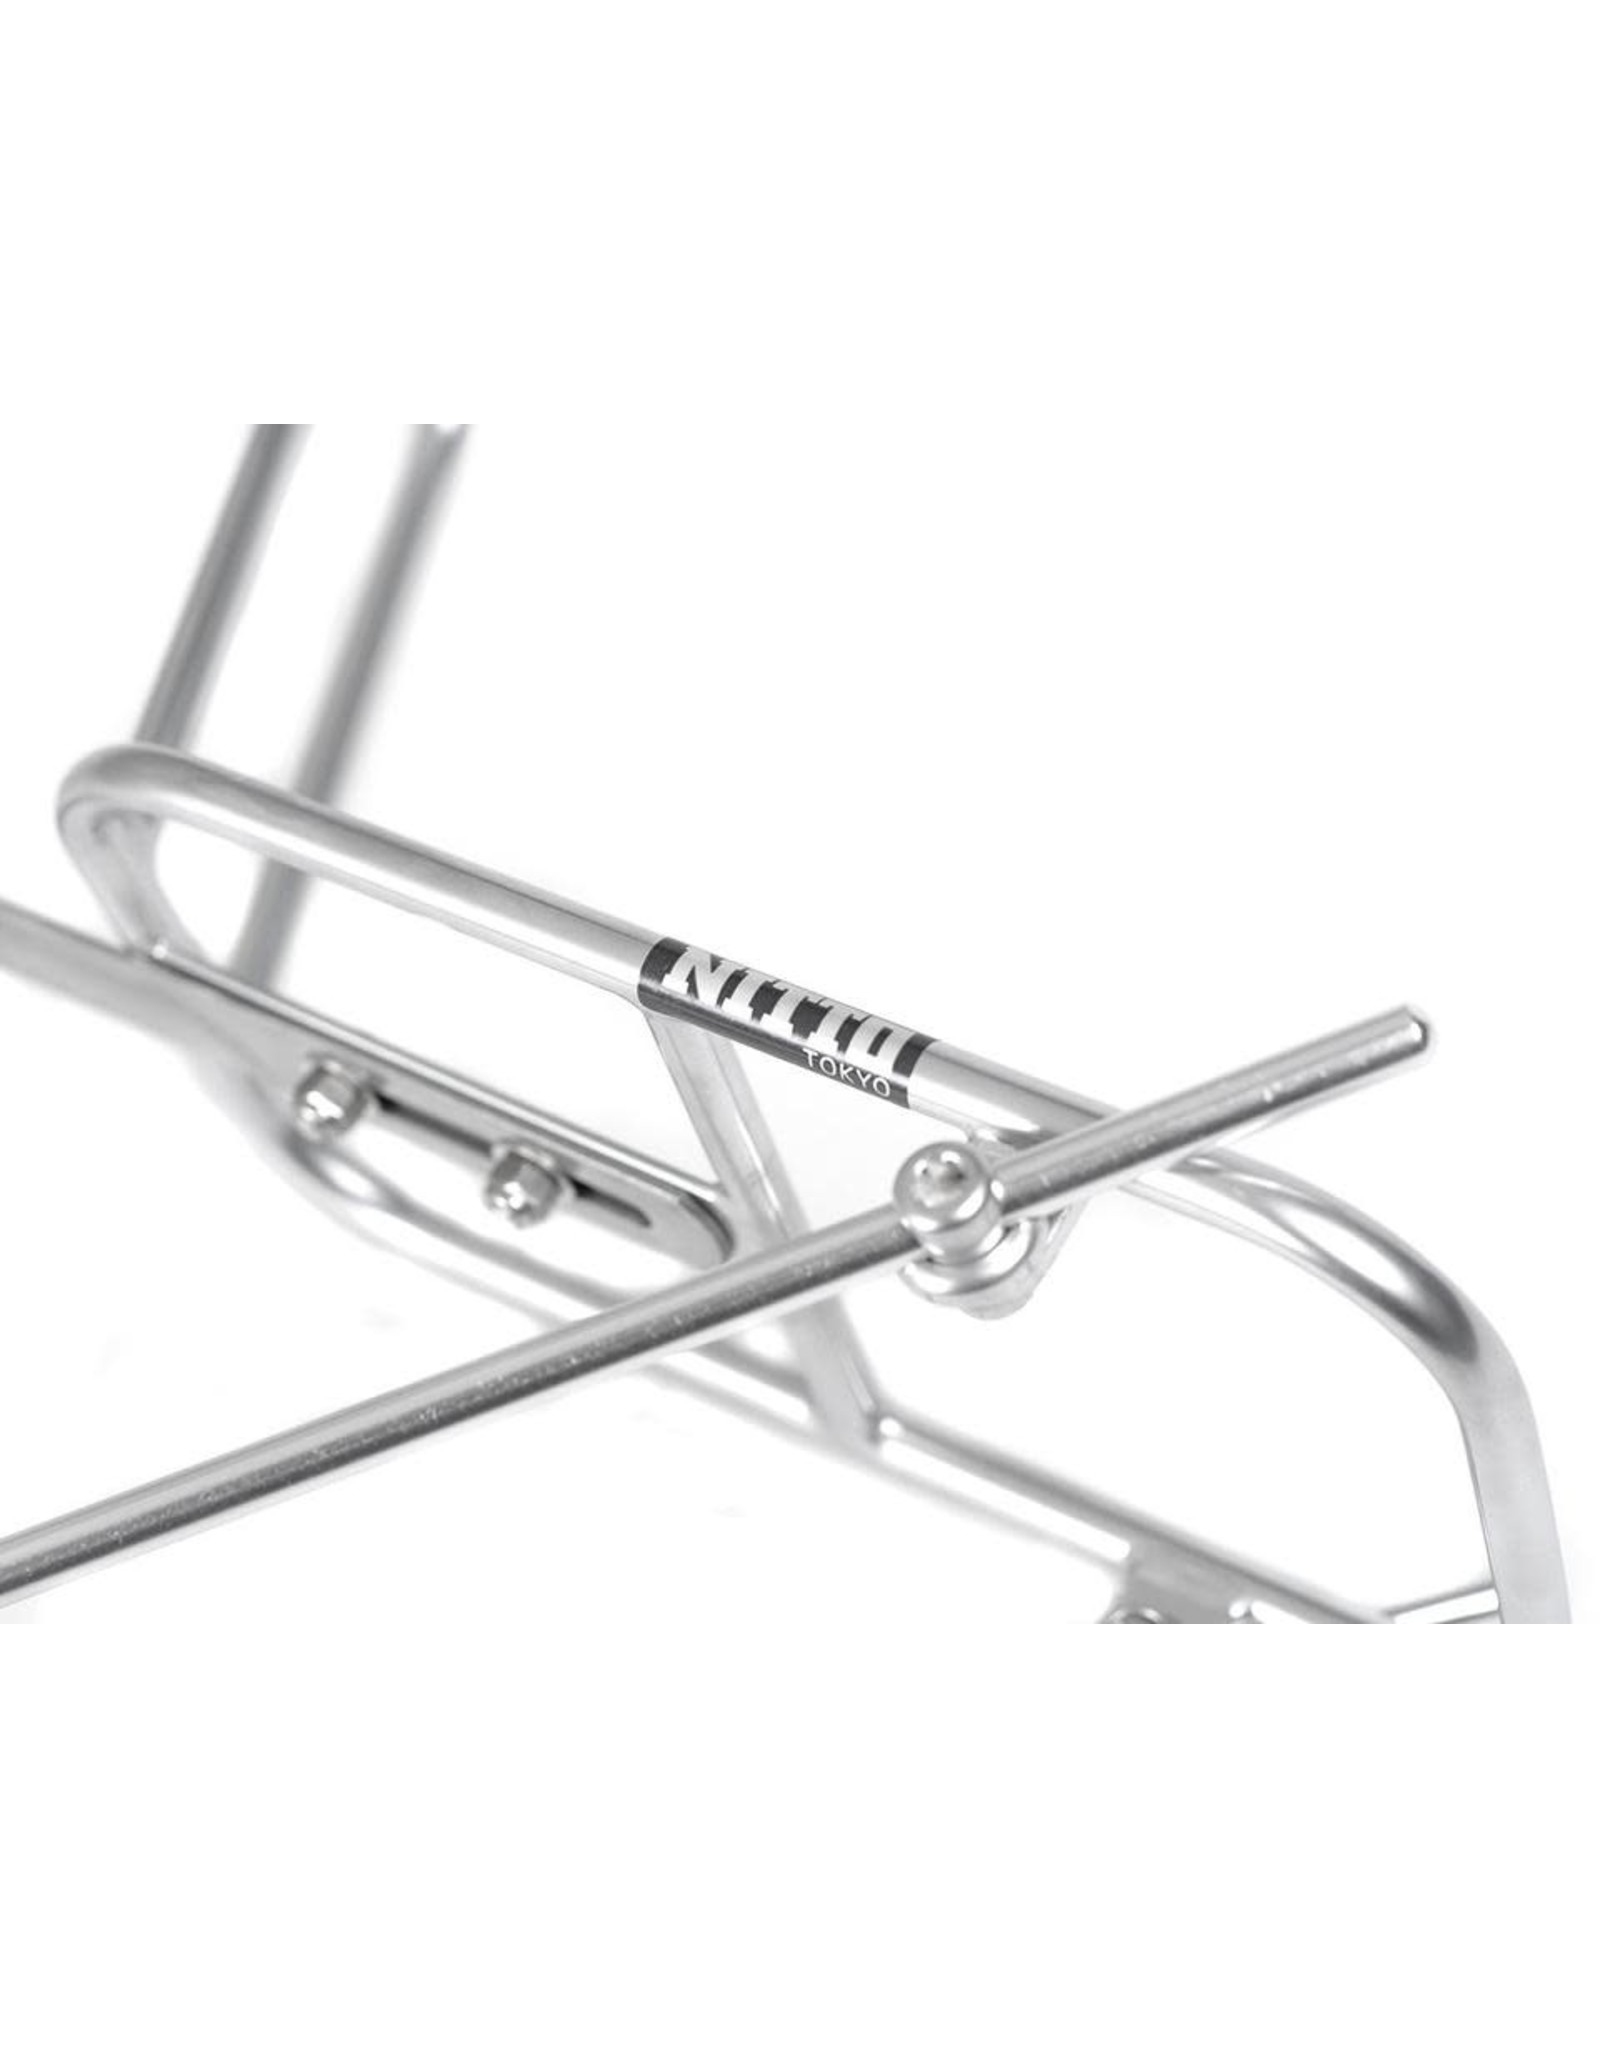 NITTO M18 Front Rack - Silver